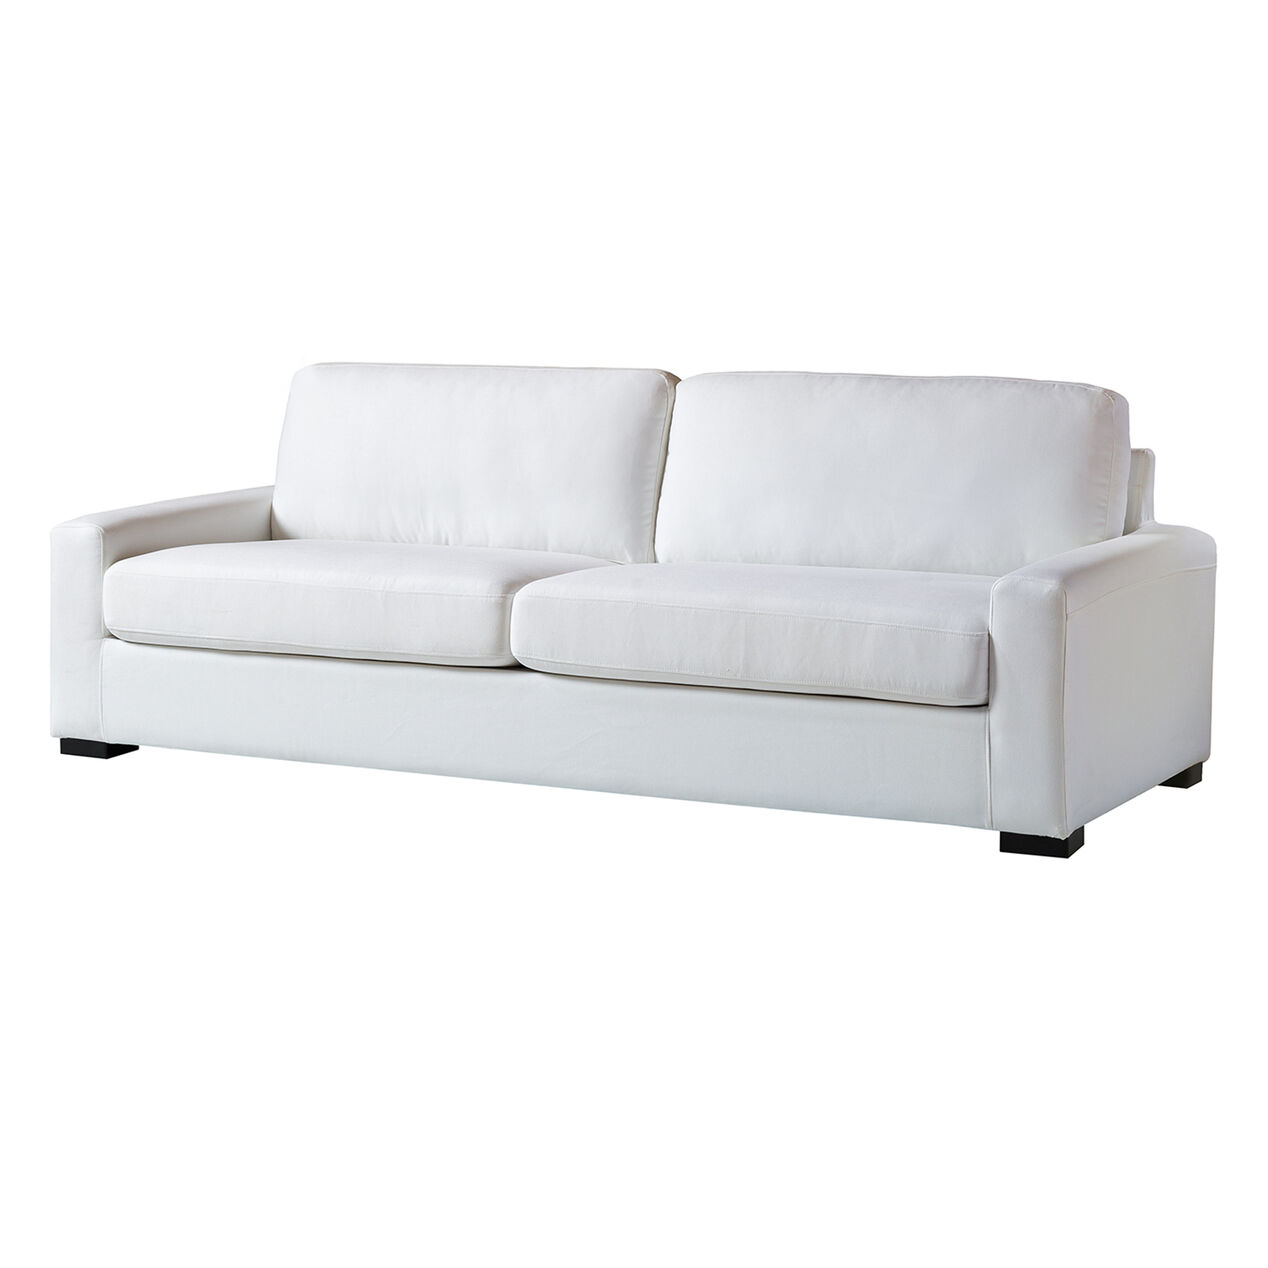 White malone slipcover sofa at home White loveseat slipcovers